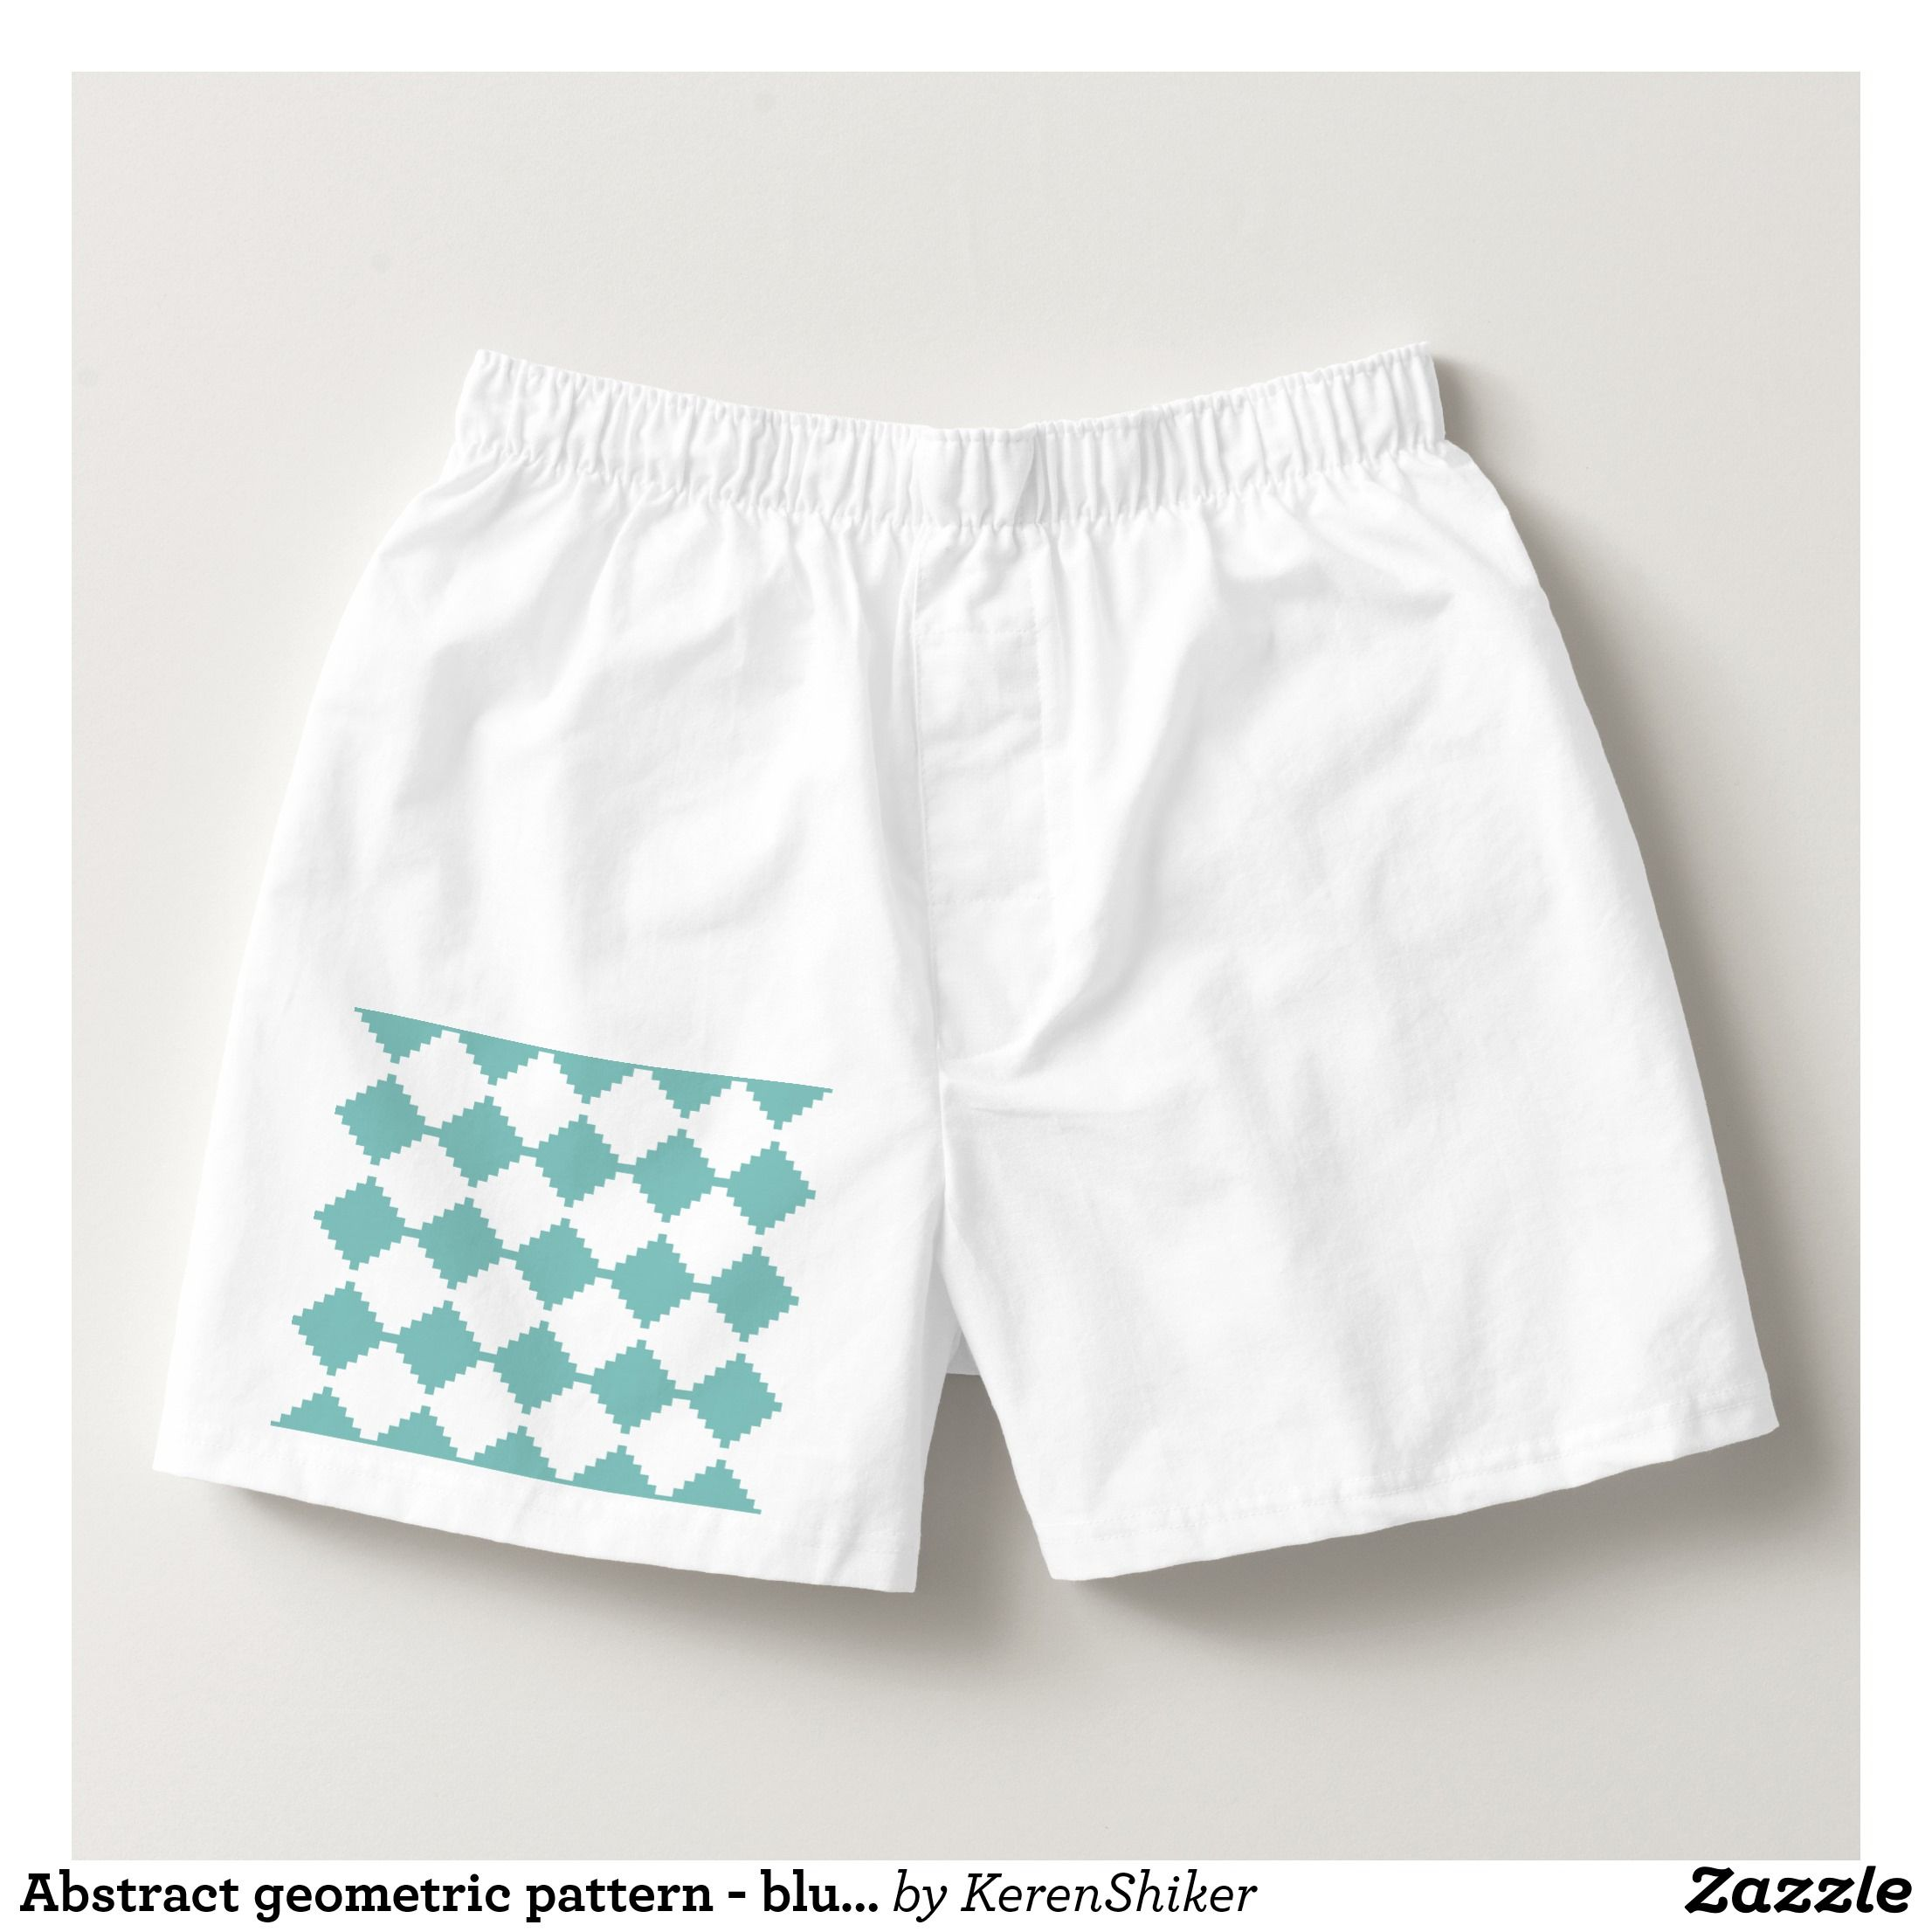 Abstract geometric pattern - blue and white. boxers - Dashing Cotton Underwear And Sleepwear By Talented Fashion And Graphic Designers - #underwear #boxershorts #boxers #mensfashion #apparel #shopping #bargain #sale #outfit #stylish #cool #graphicdesign #trendy #fashion #design #fashiondesign #designer #fashiondesigner #style